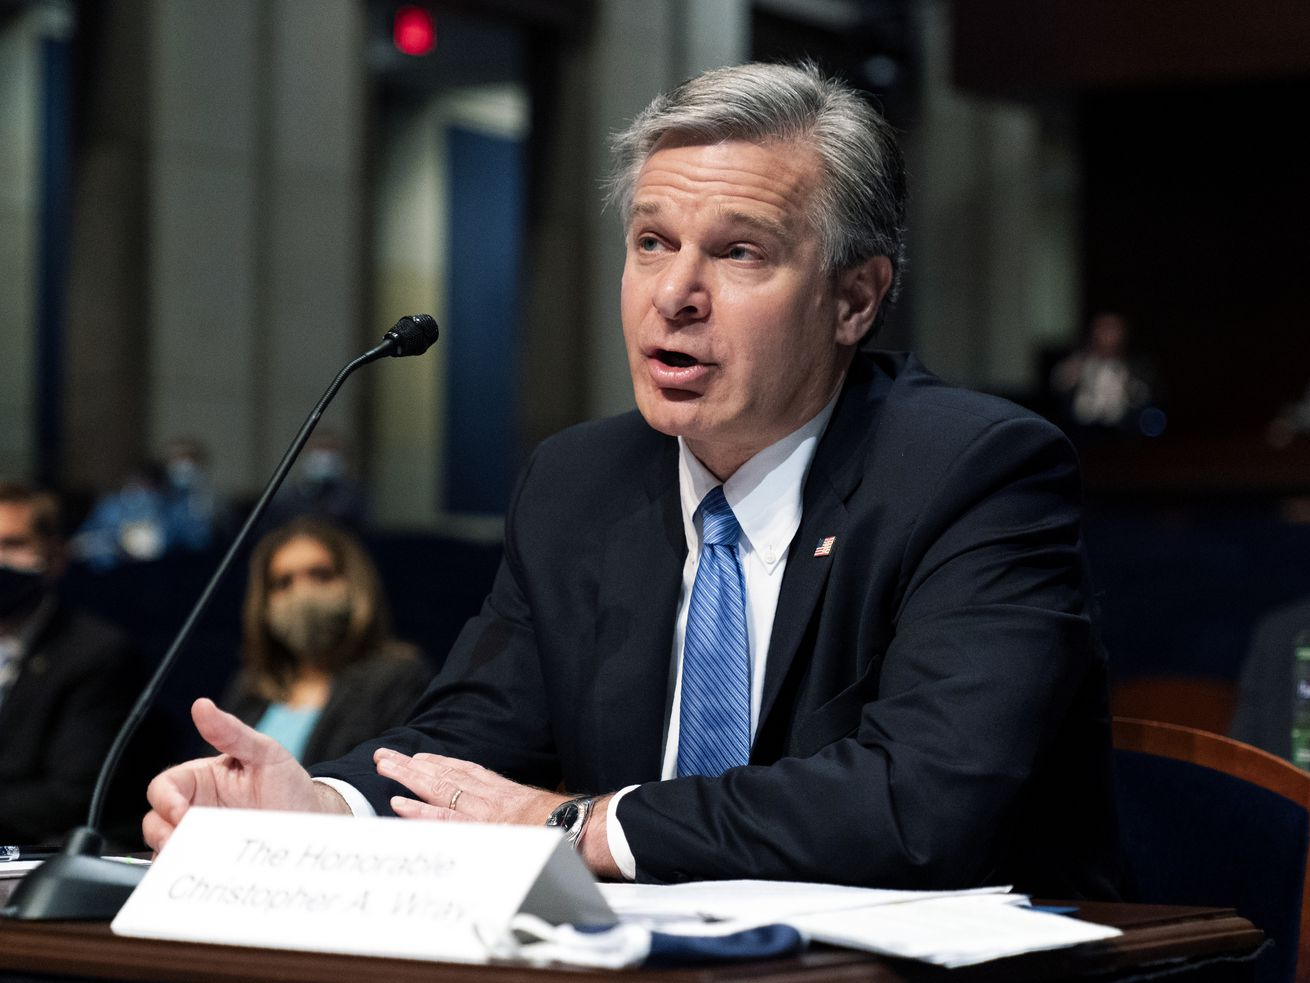 Federal Bureau of Investigation (FBI) Director Christopher Wray testifies before the House Judiciary Committee oversight hearing on the Federal Bureau of Investigation on Capitol Hill, Thursday, June 10, 2021, in Washington.